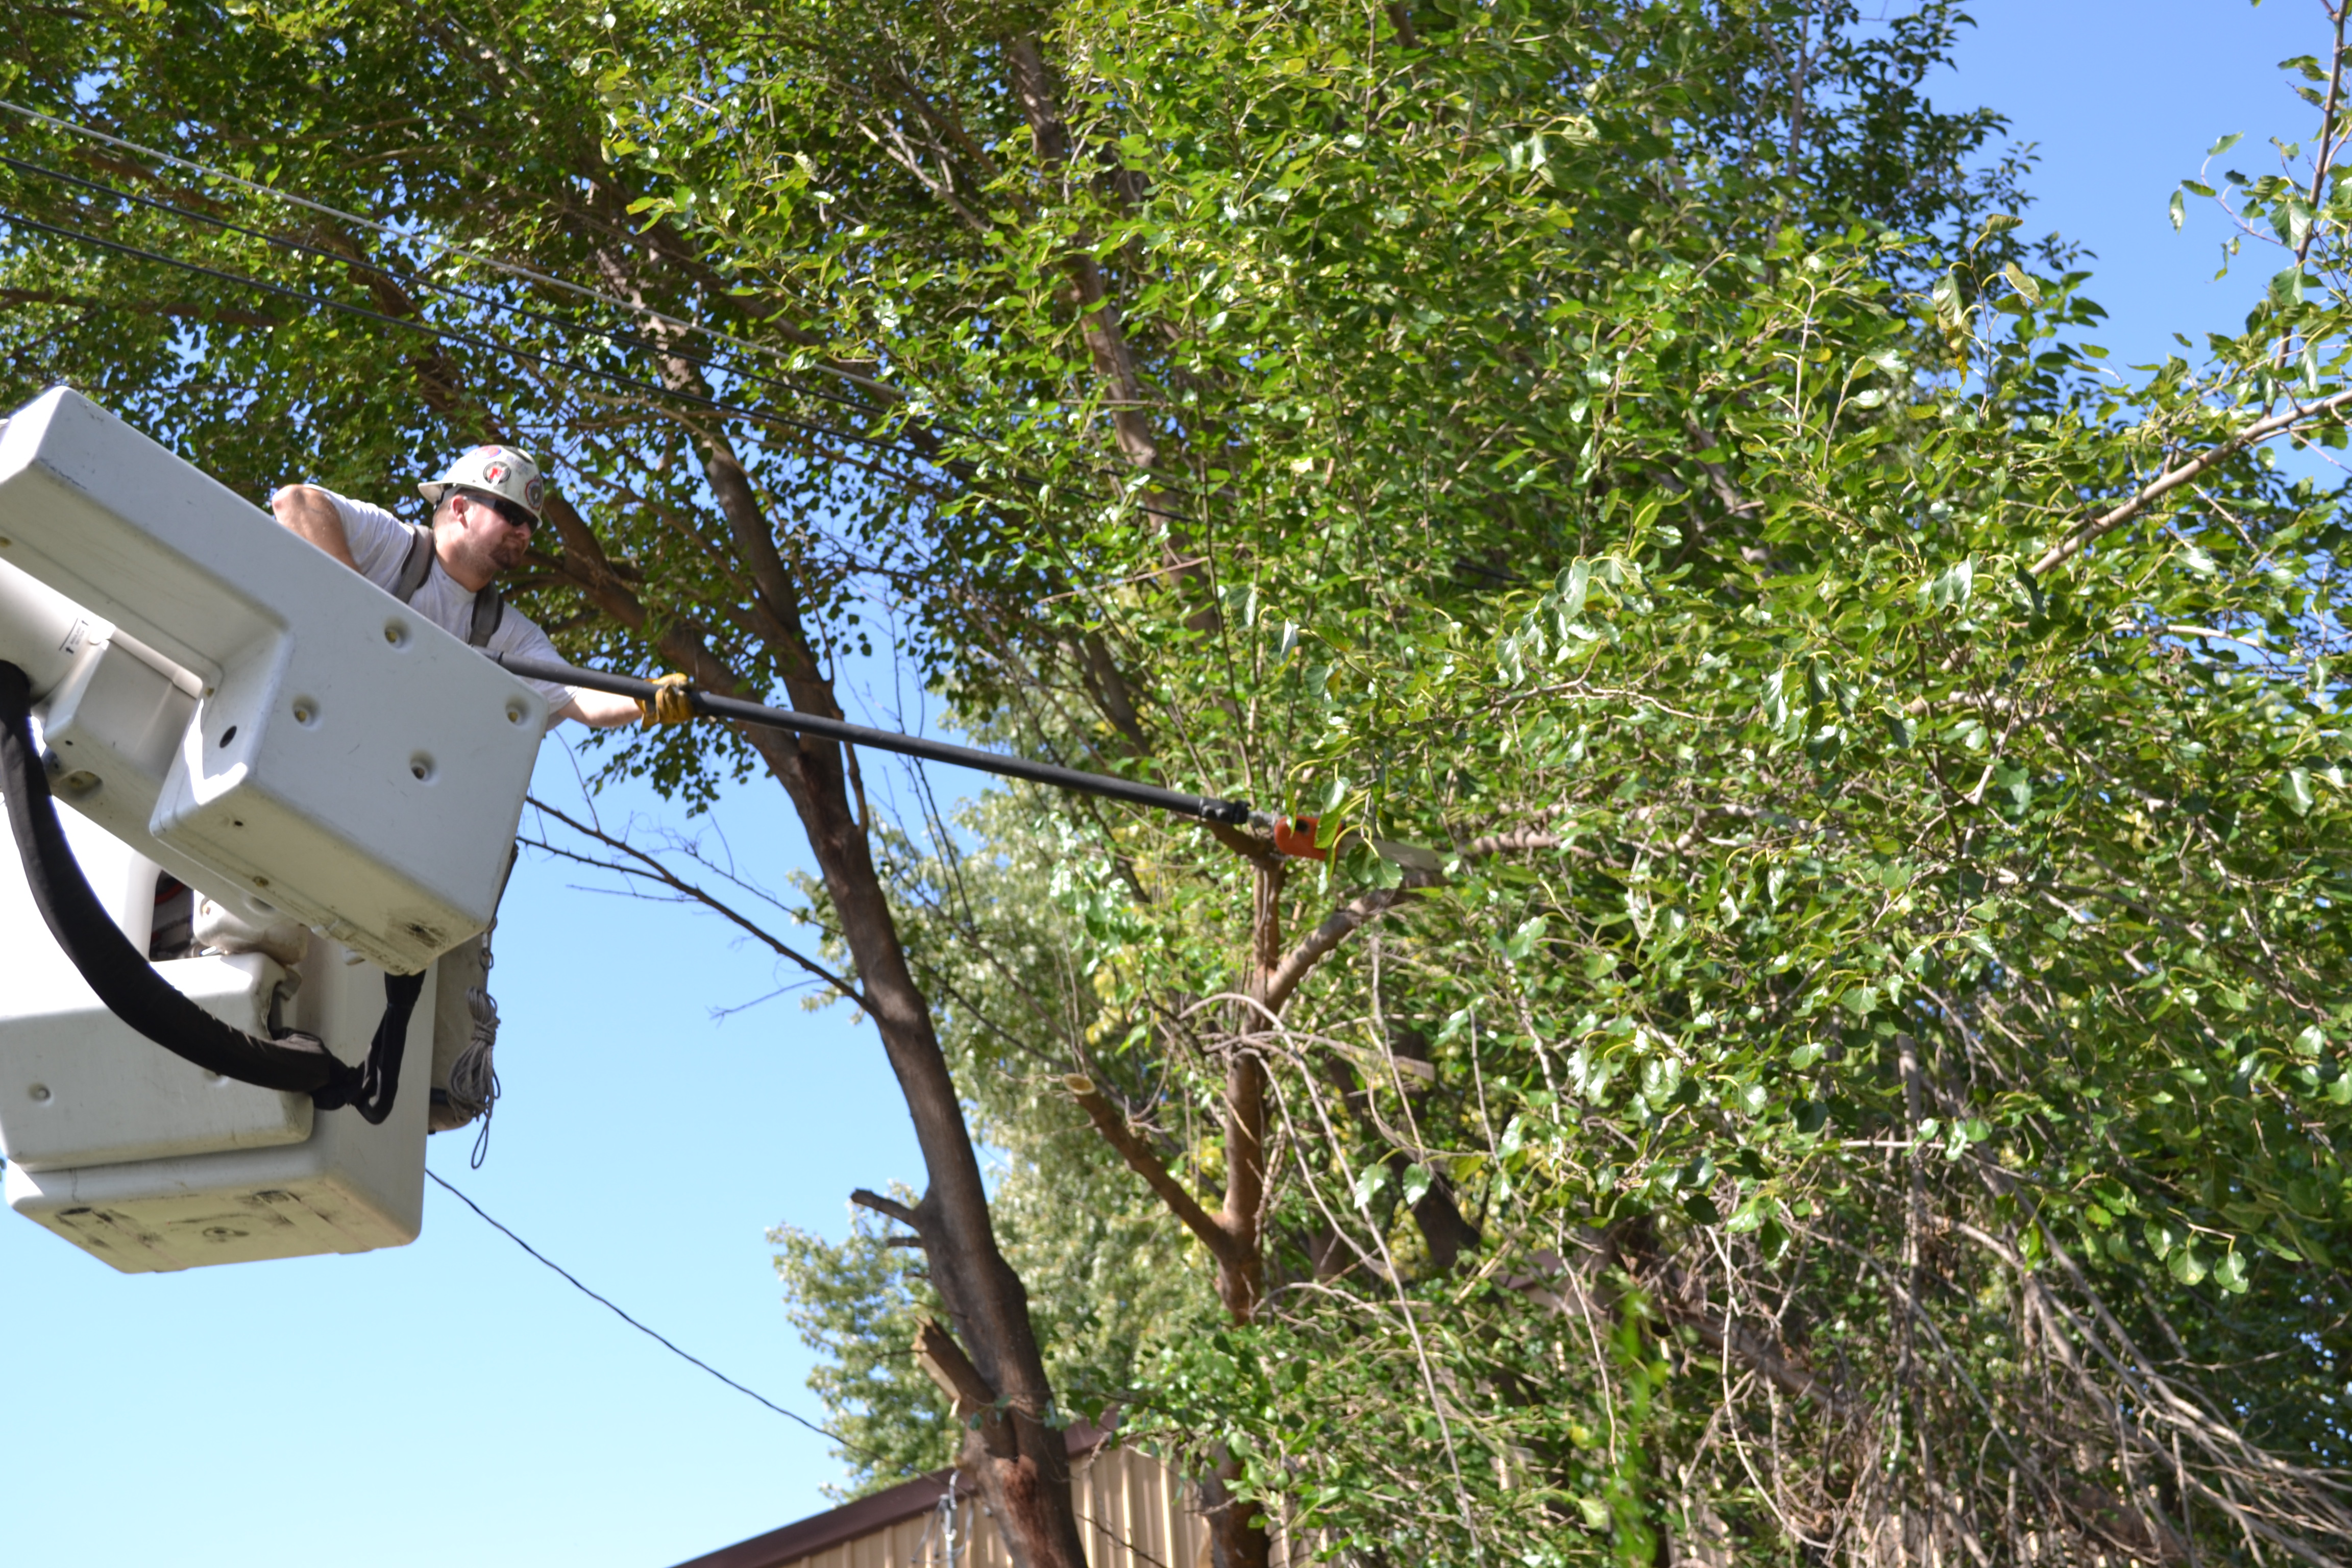 Troubleshooter Aaron Prohaska trims trees that had grown into the power lines at a workshop in LaPlatte. OPPD advises customers not to plant trees underneath power lines. For tree planting tips, visit oppd.com/trees.